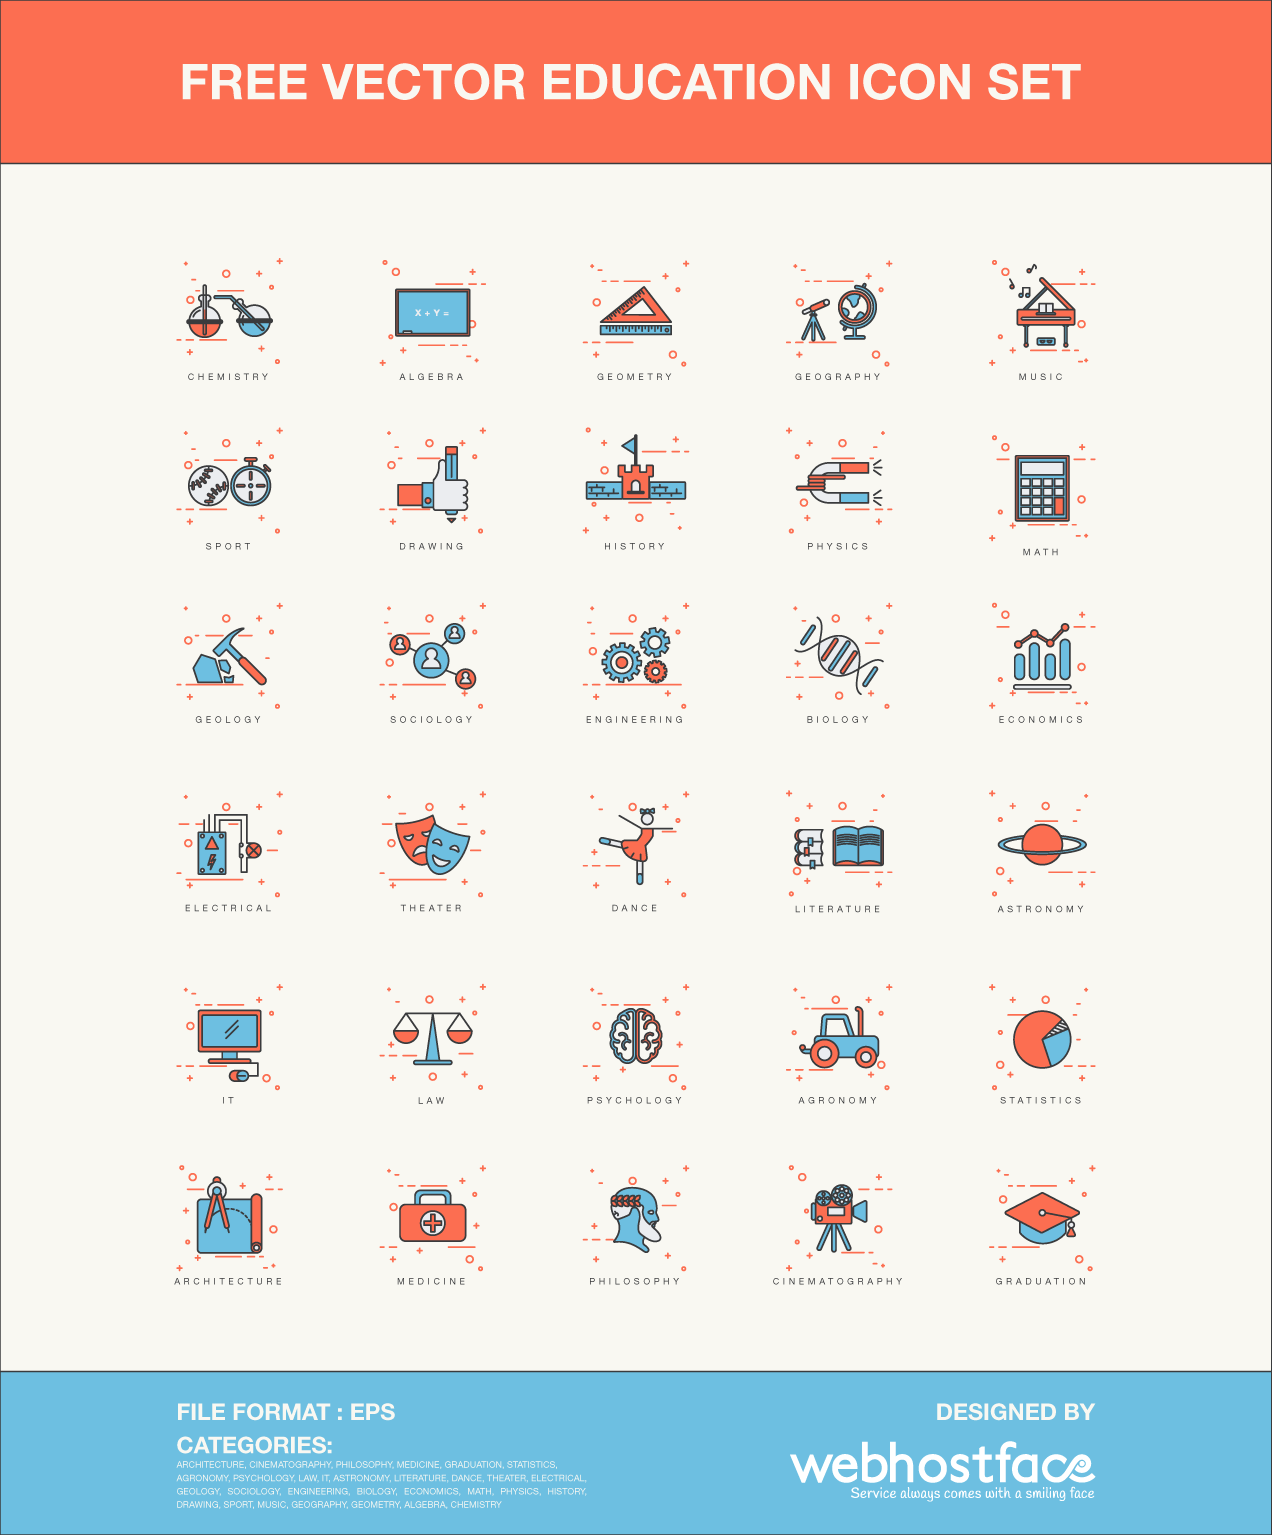 Free Education Vector Icons